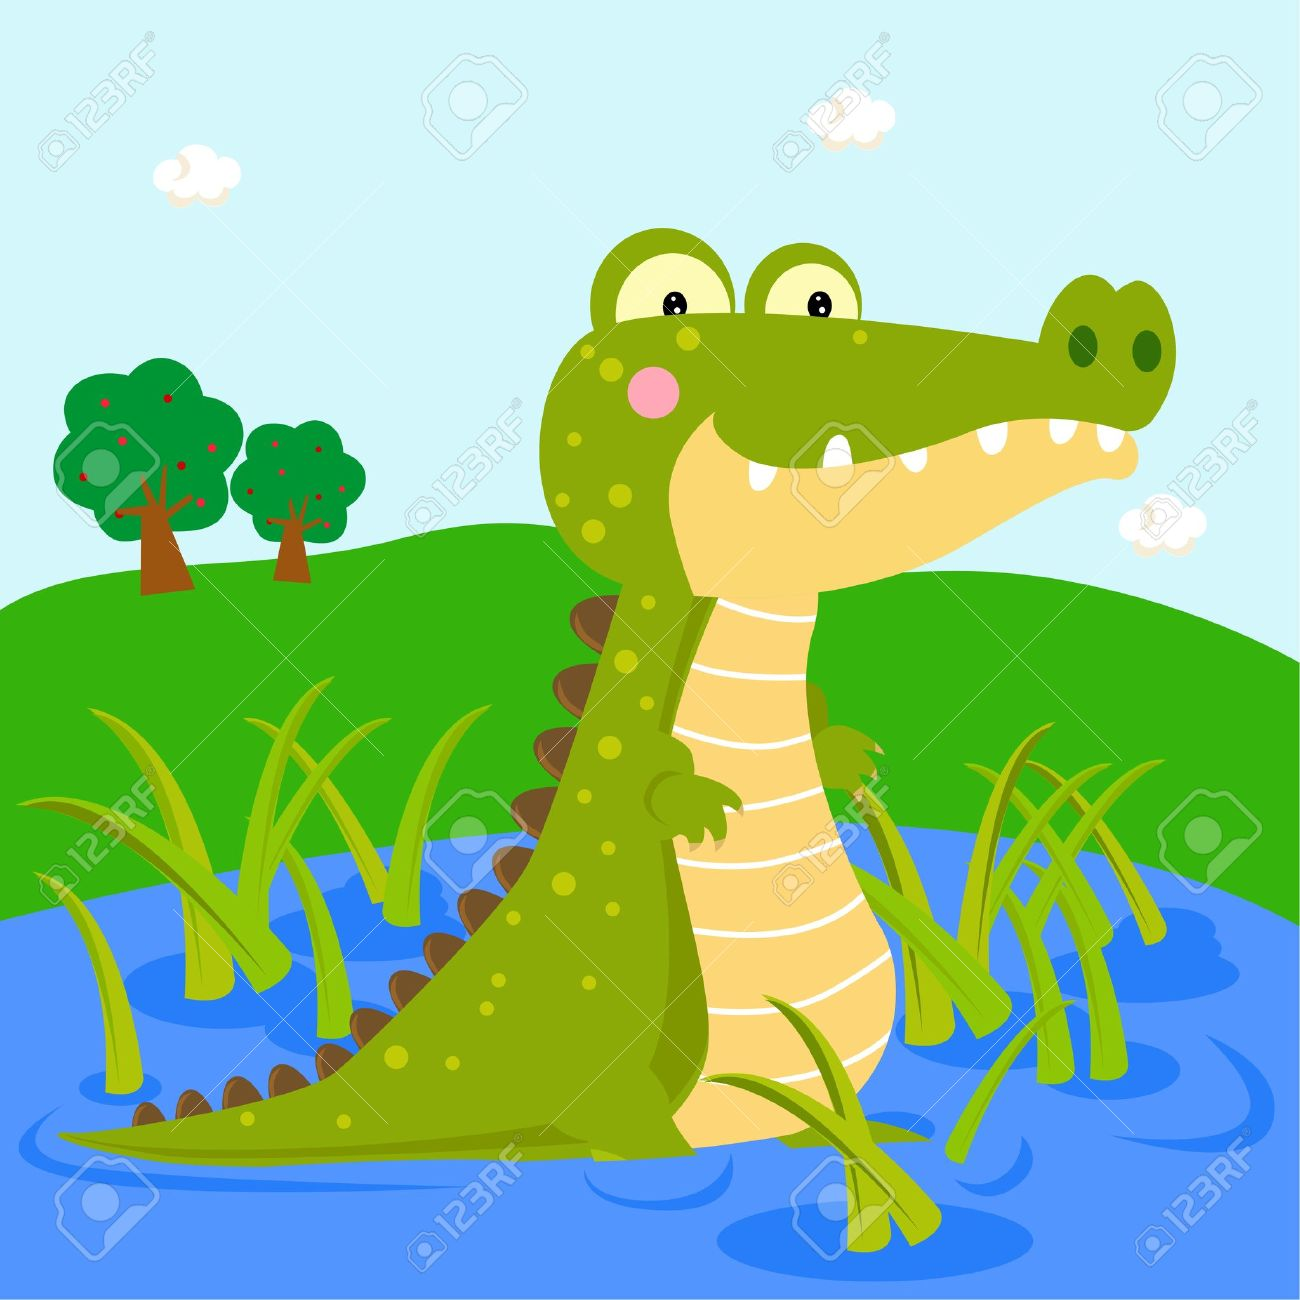 Crocodile In Water Clipart.